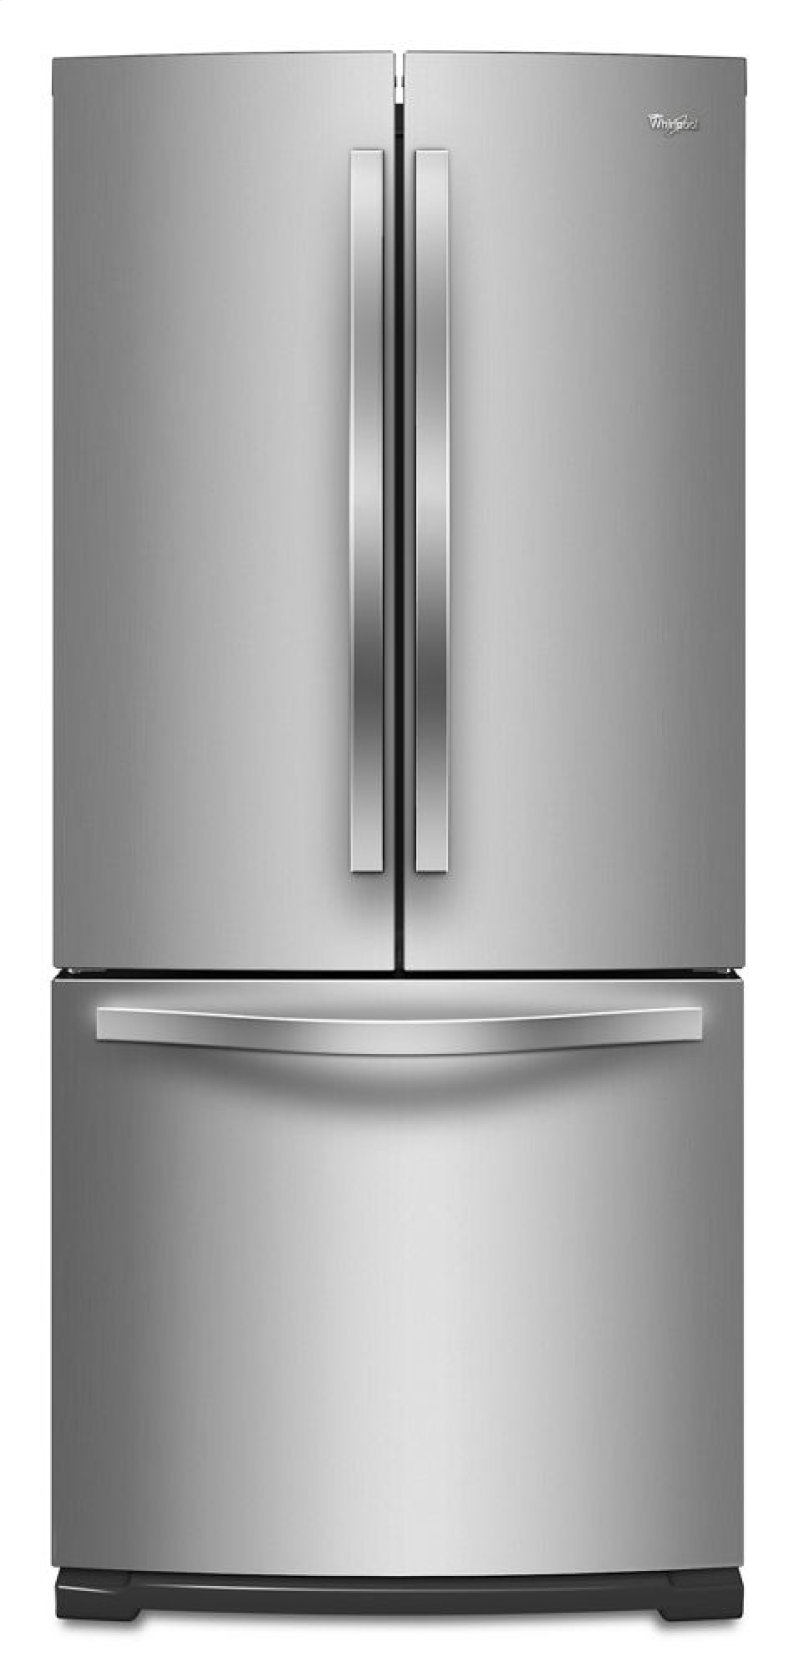 Wrf560smym In Monochromatic Stainless Steel By Whirlpool In Hannibal